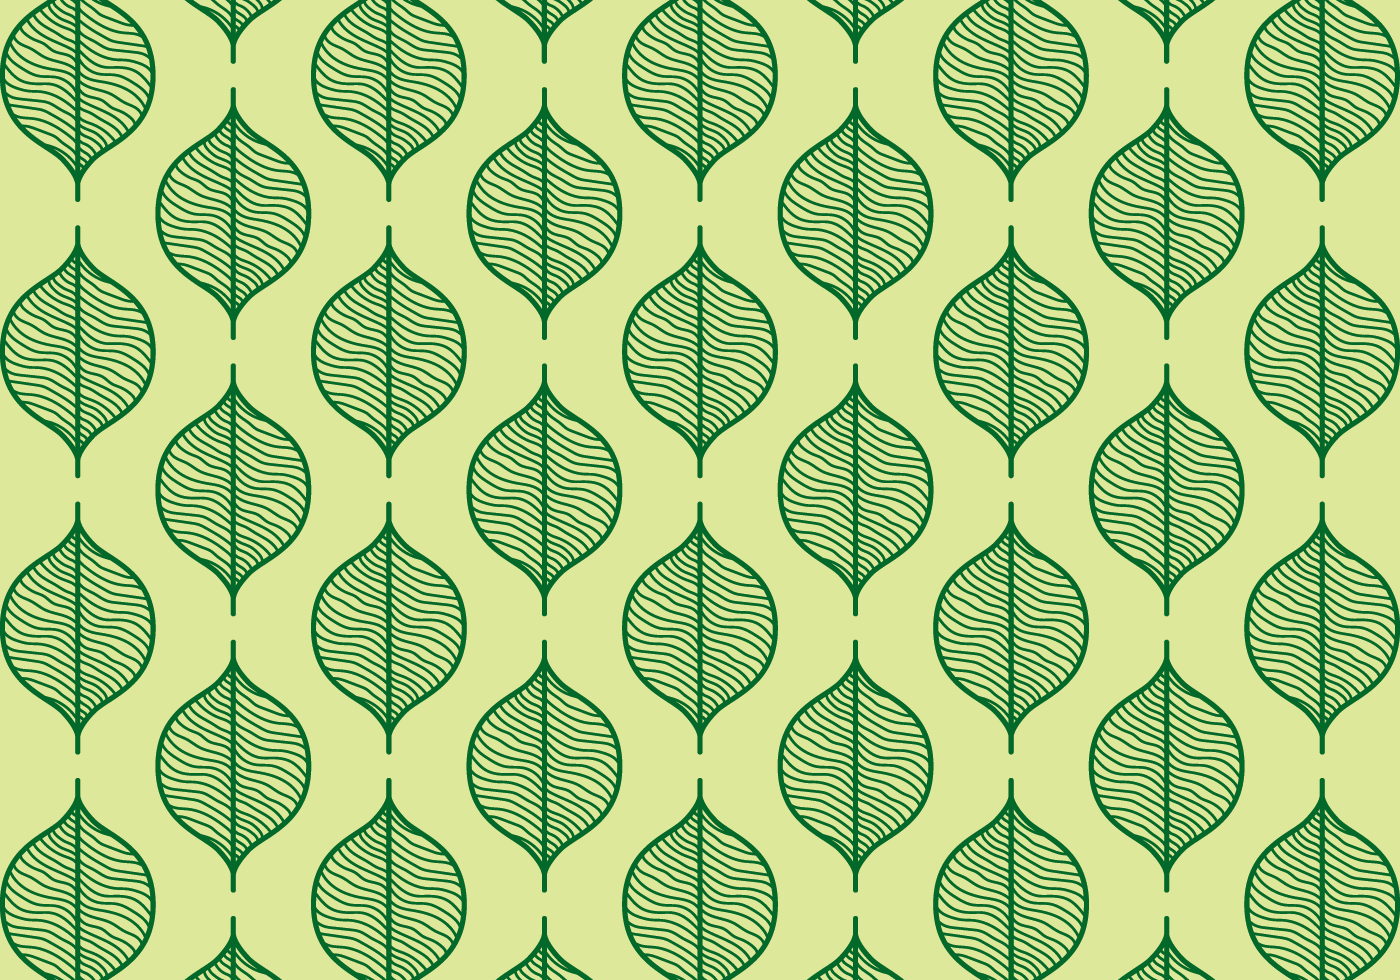 green seamless leaf background download free vector art